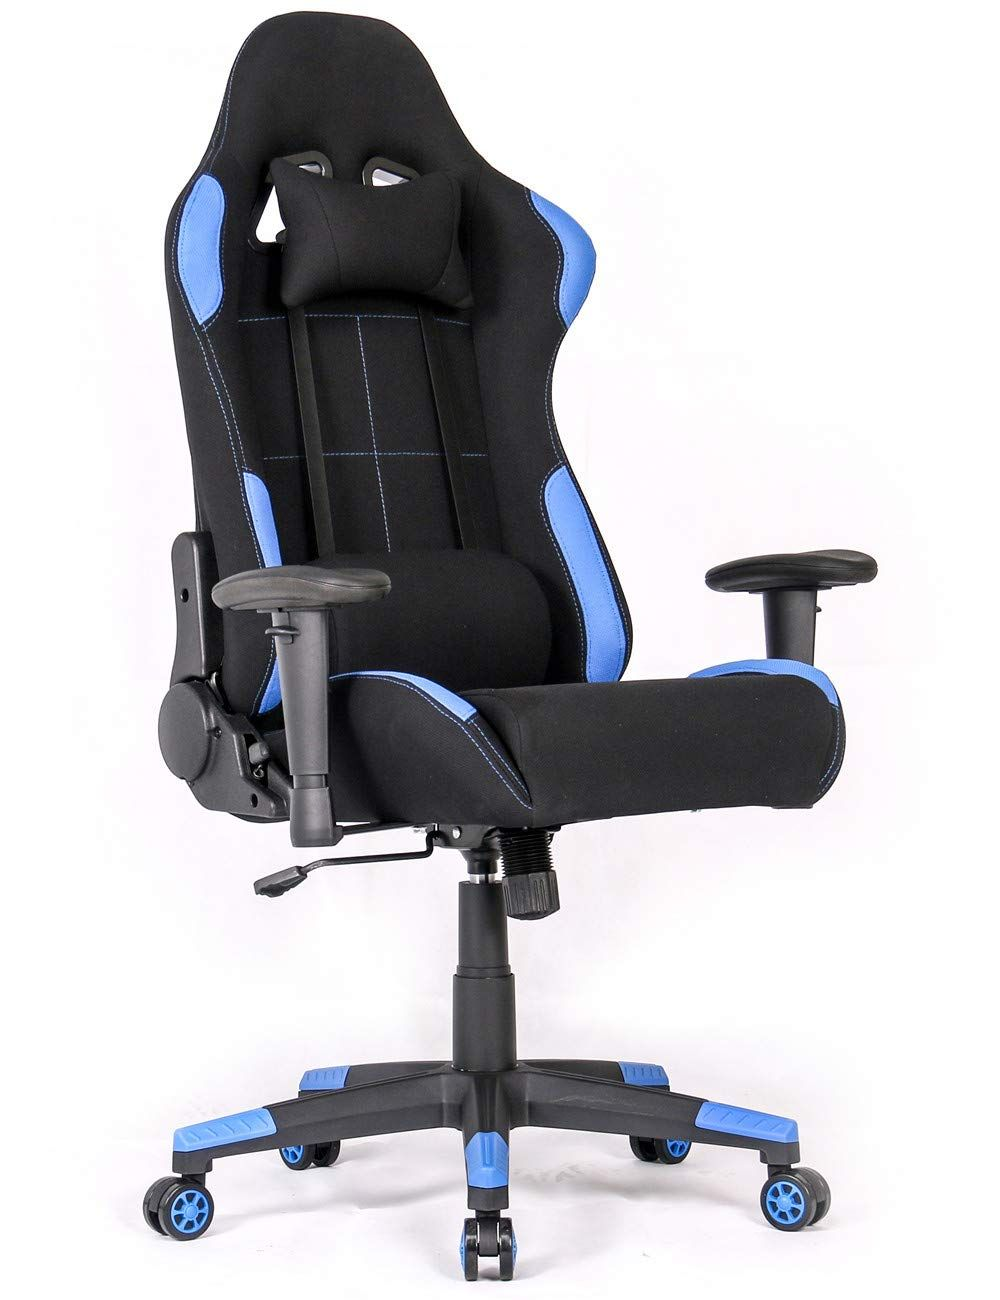 Ergonomic gaming chair racing style office chair recliner